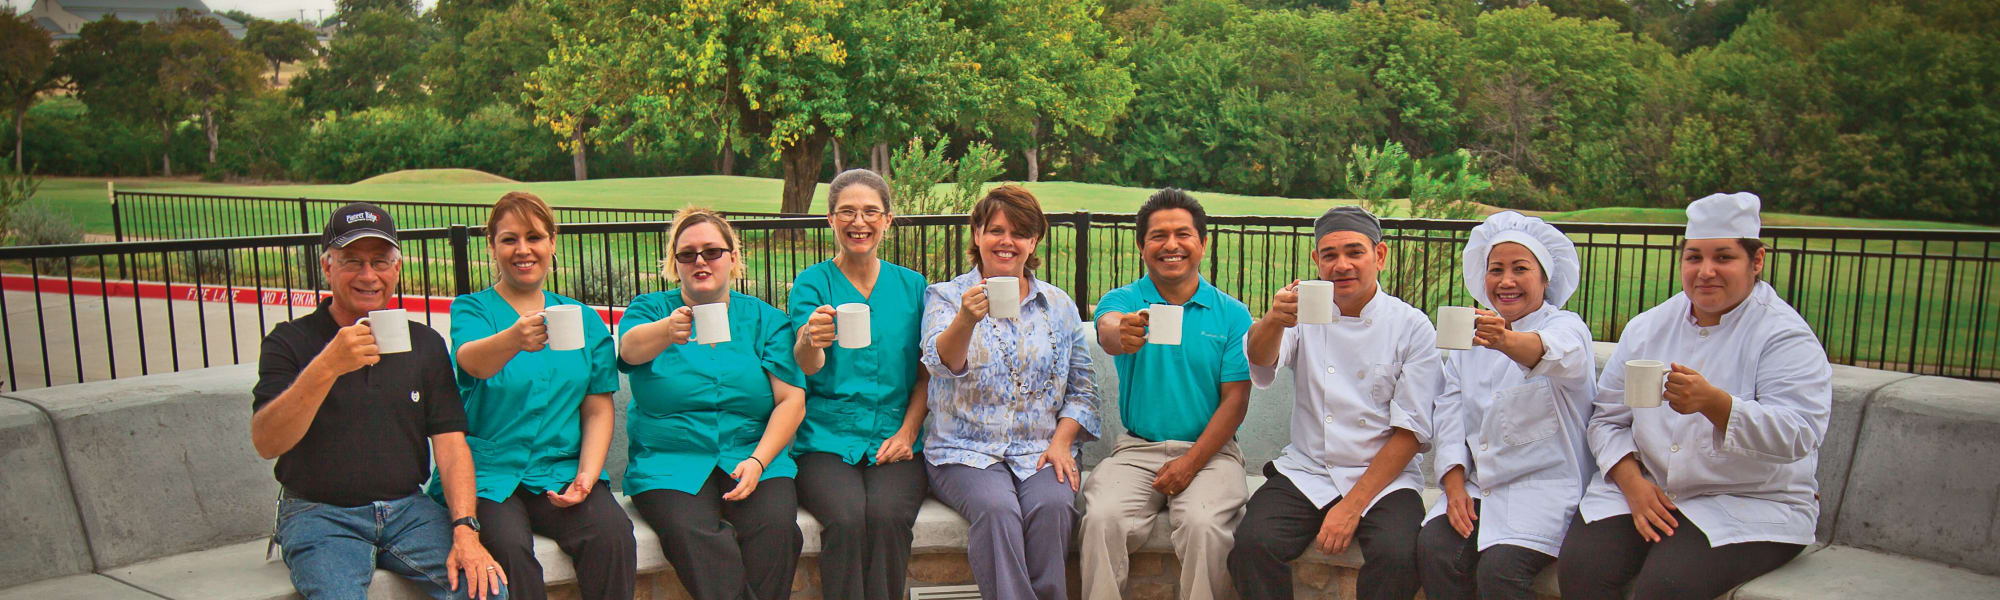 Careers at Mulberry Gardens Memory Care in Munroe Falls, Ohio